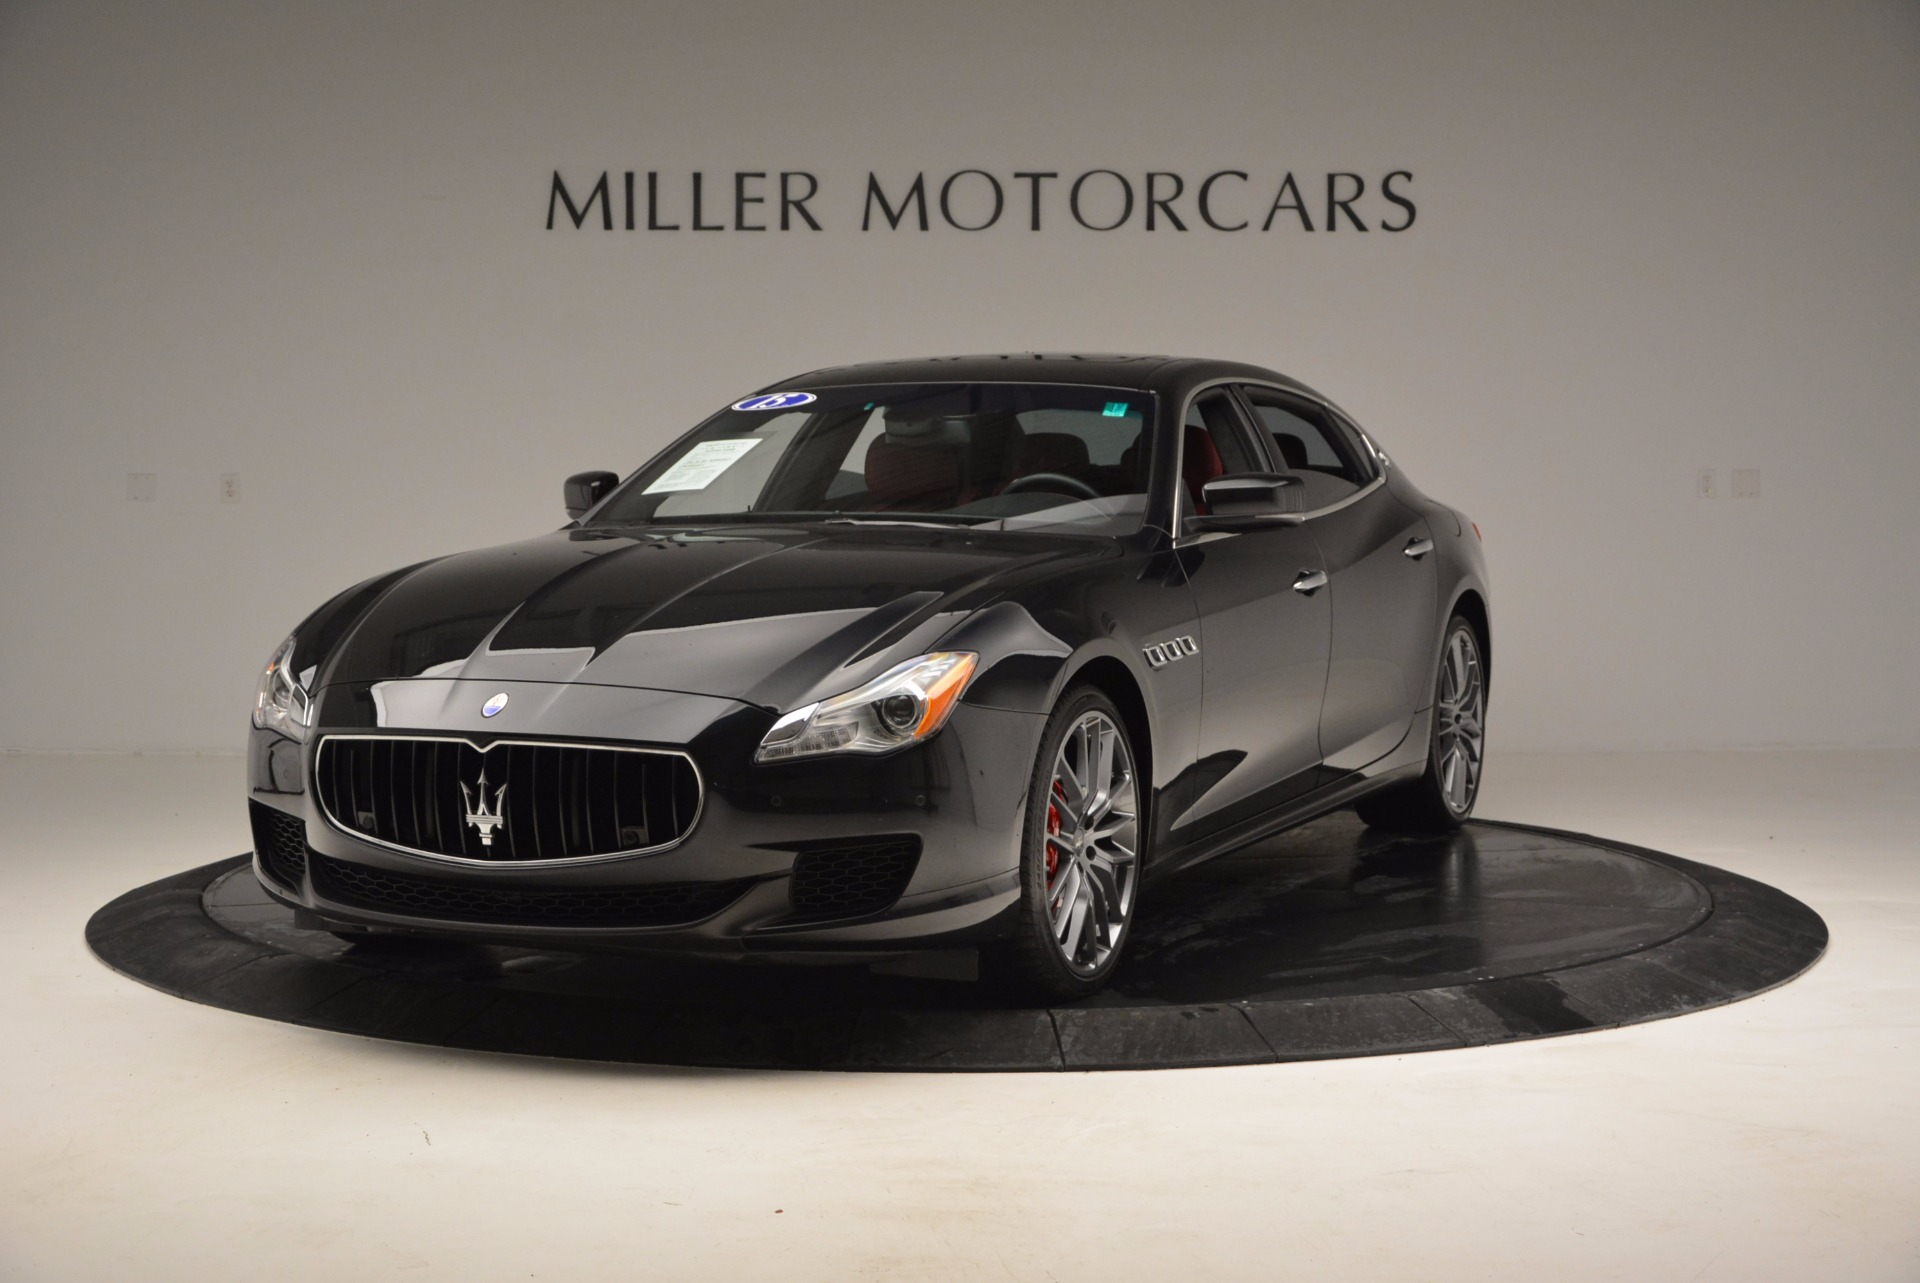 Used 2015 Maserati Quattroporte S Q4 for sale Sold at Bentley Greenwich in Greenwich CT 06830 1